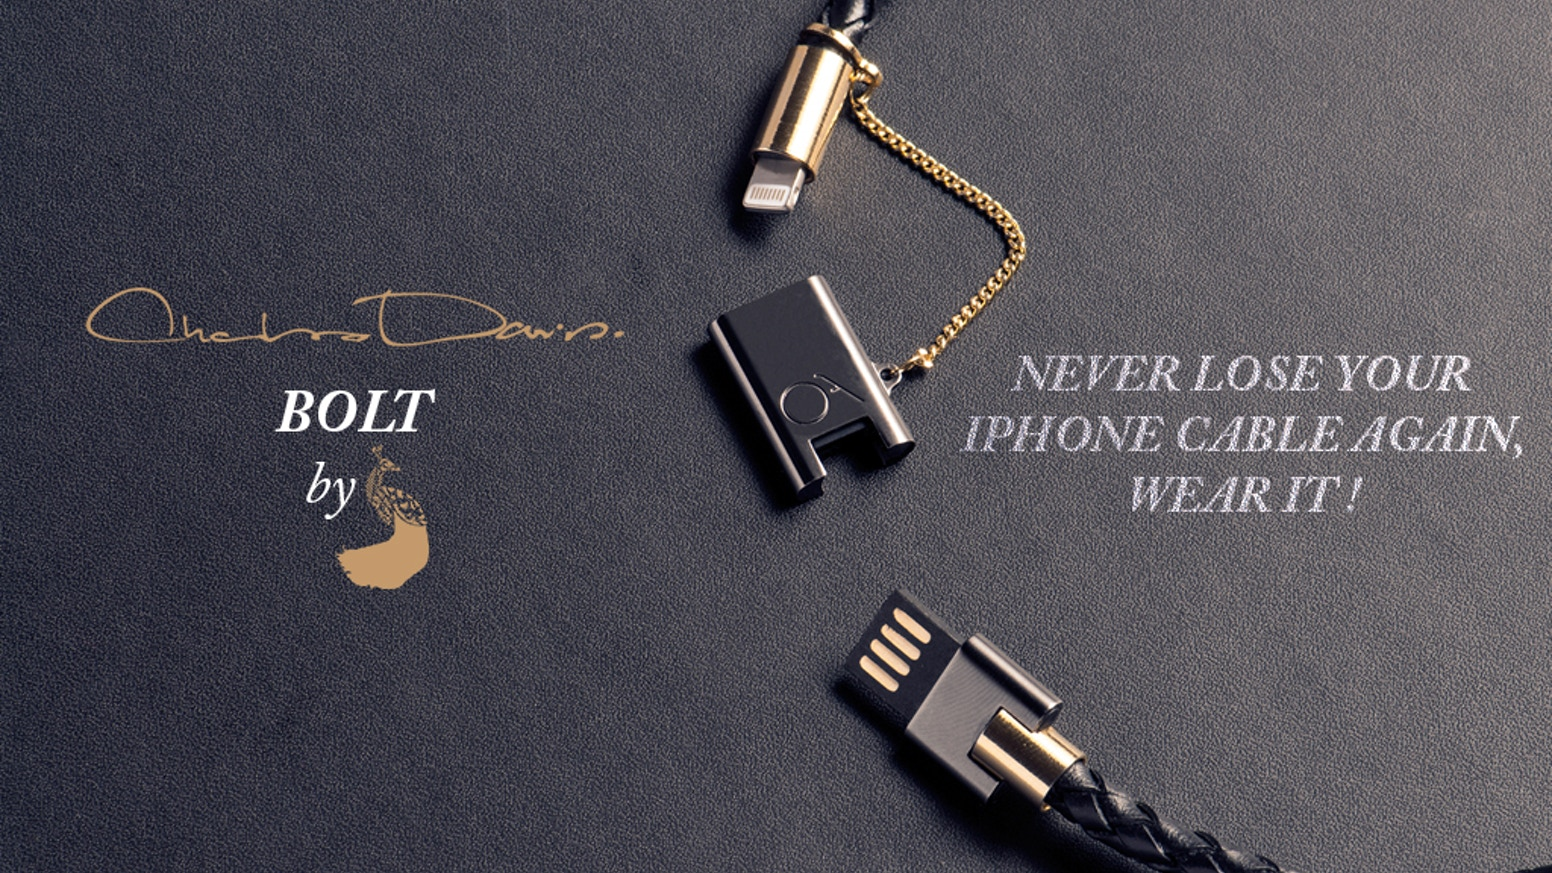 BOLT is a wearable bracelet made for iPhone, iPad & iPod, crafted of genuine leather designed to SYNC & CHARGE your devices in style! Approx. L: 430mm